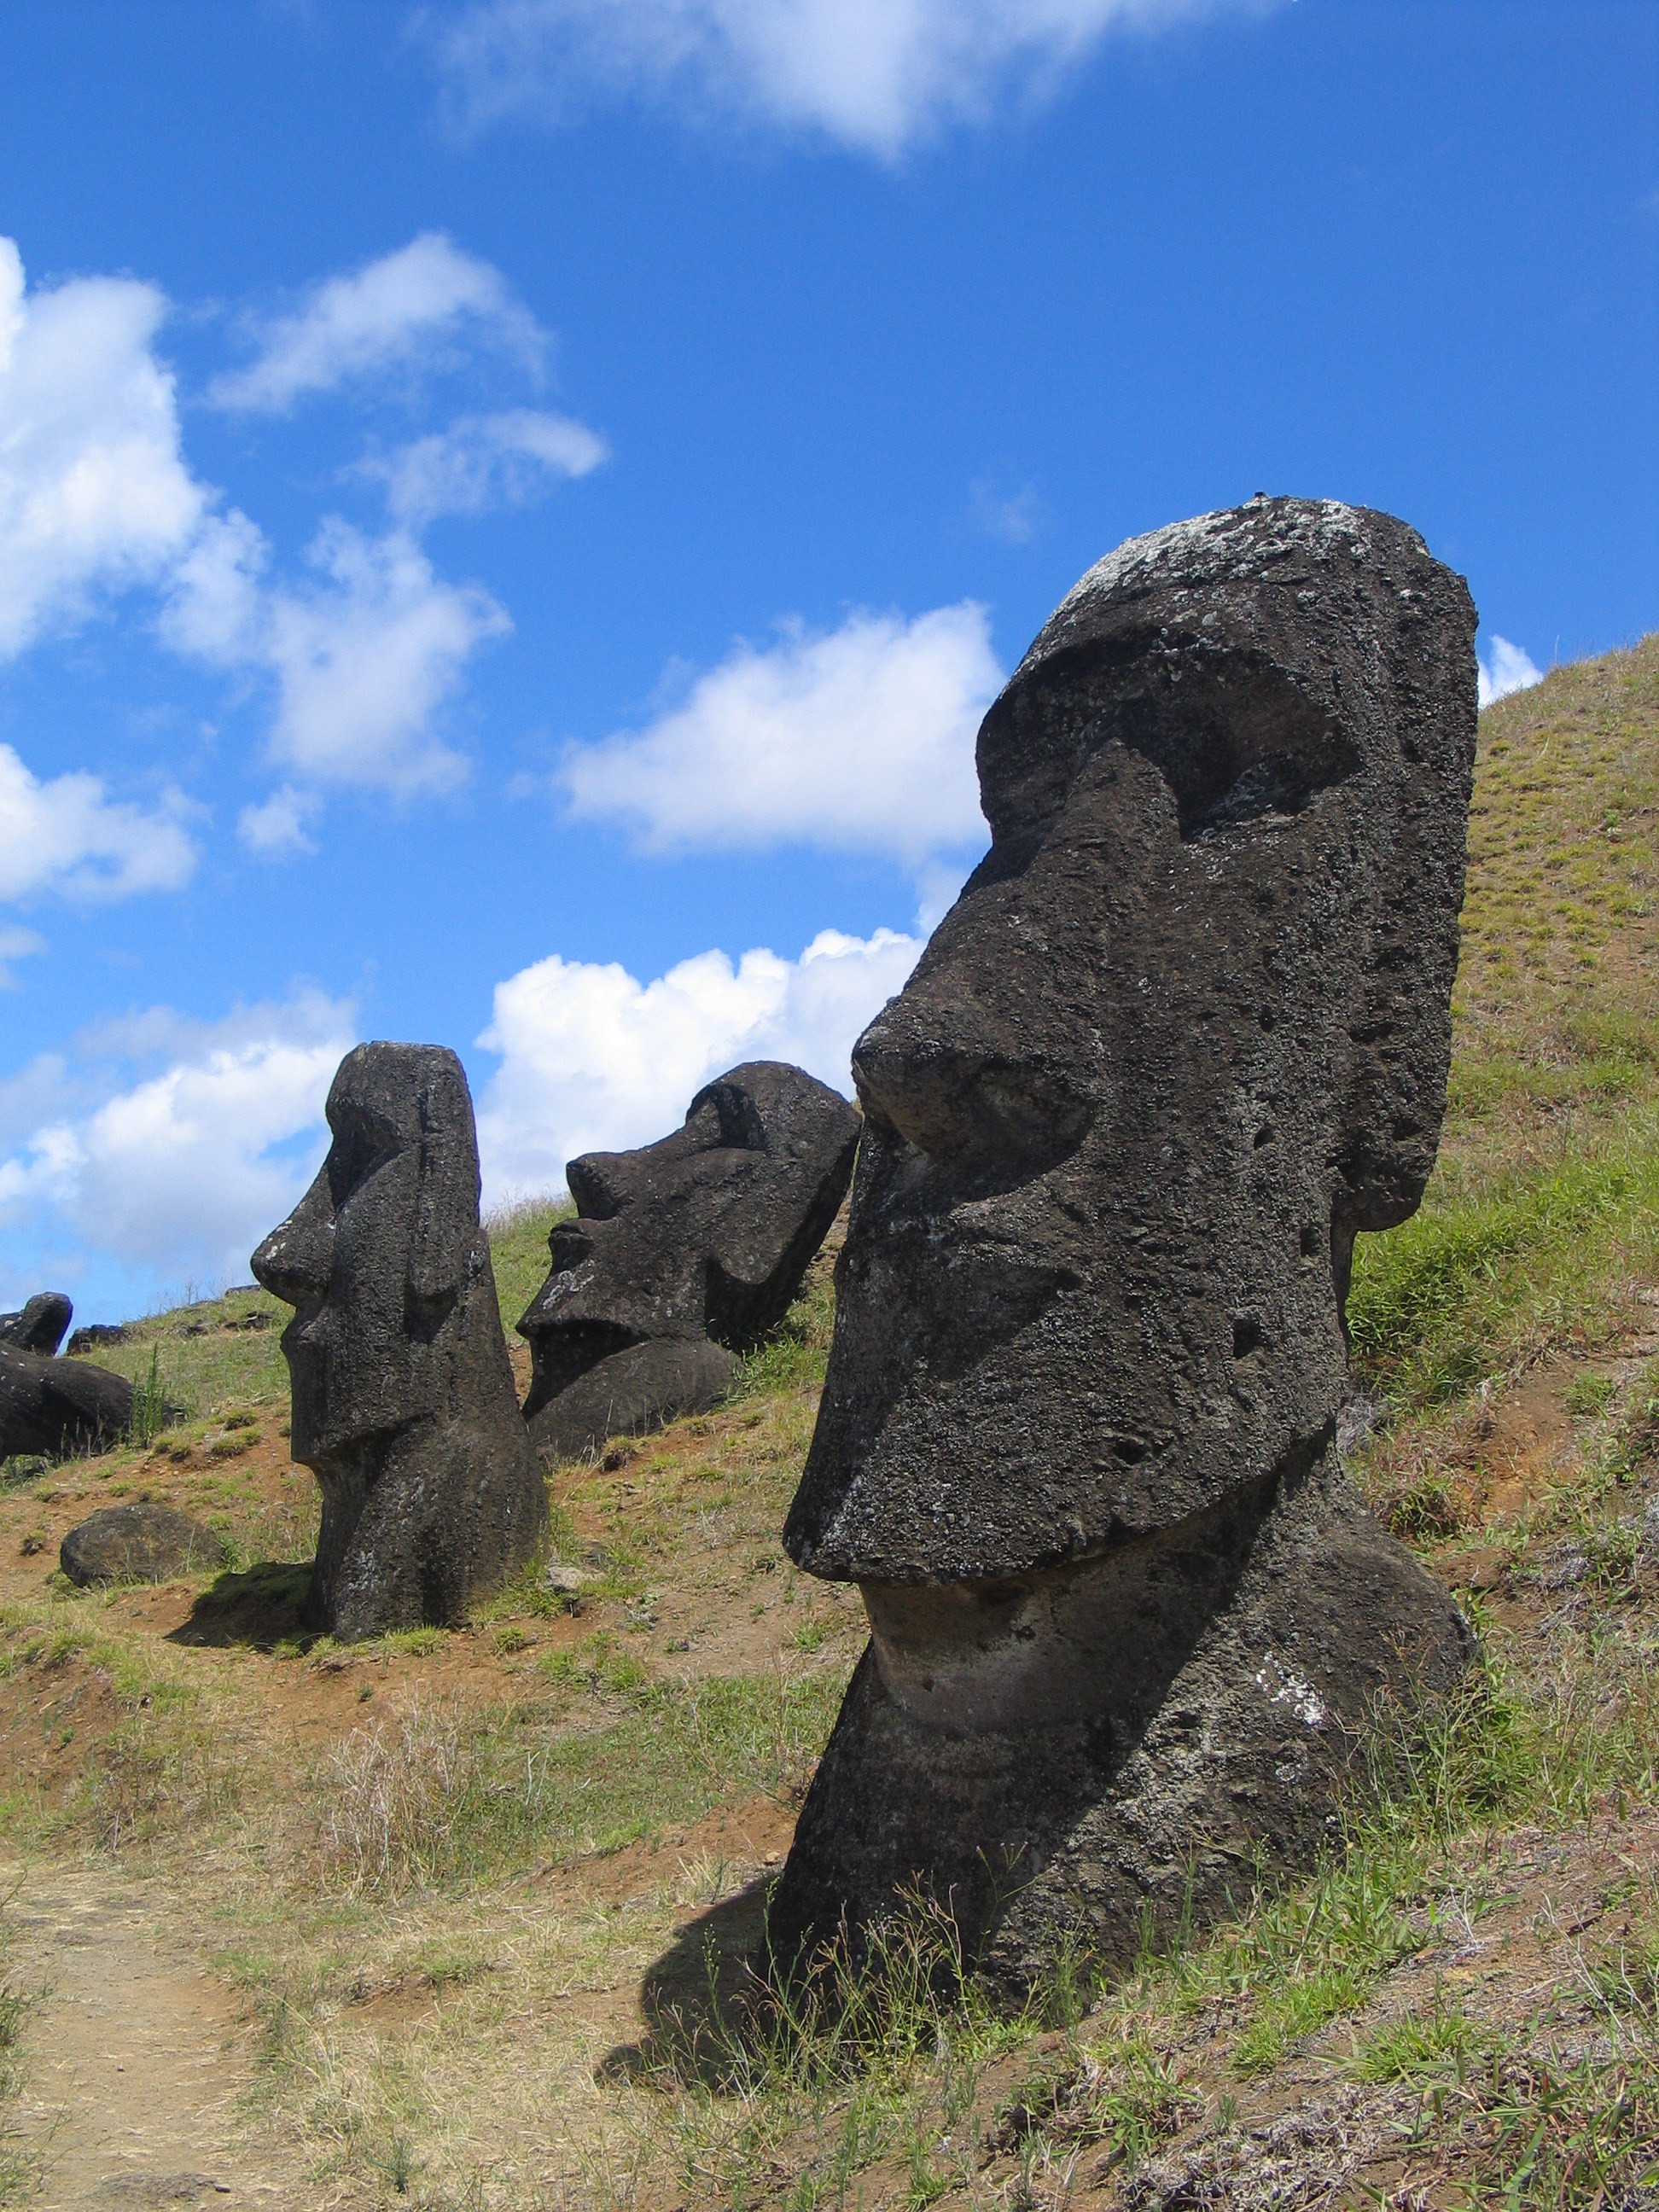 https://i1.wp.com/upload.wikimedia.org/wikipedia/commons/a/a2/Moai_Rano_raraku.jpg